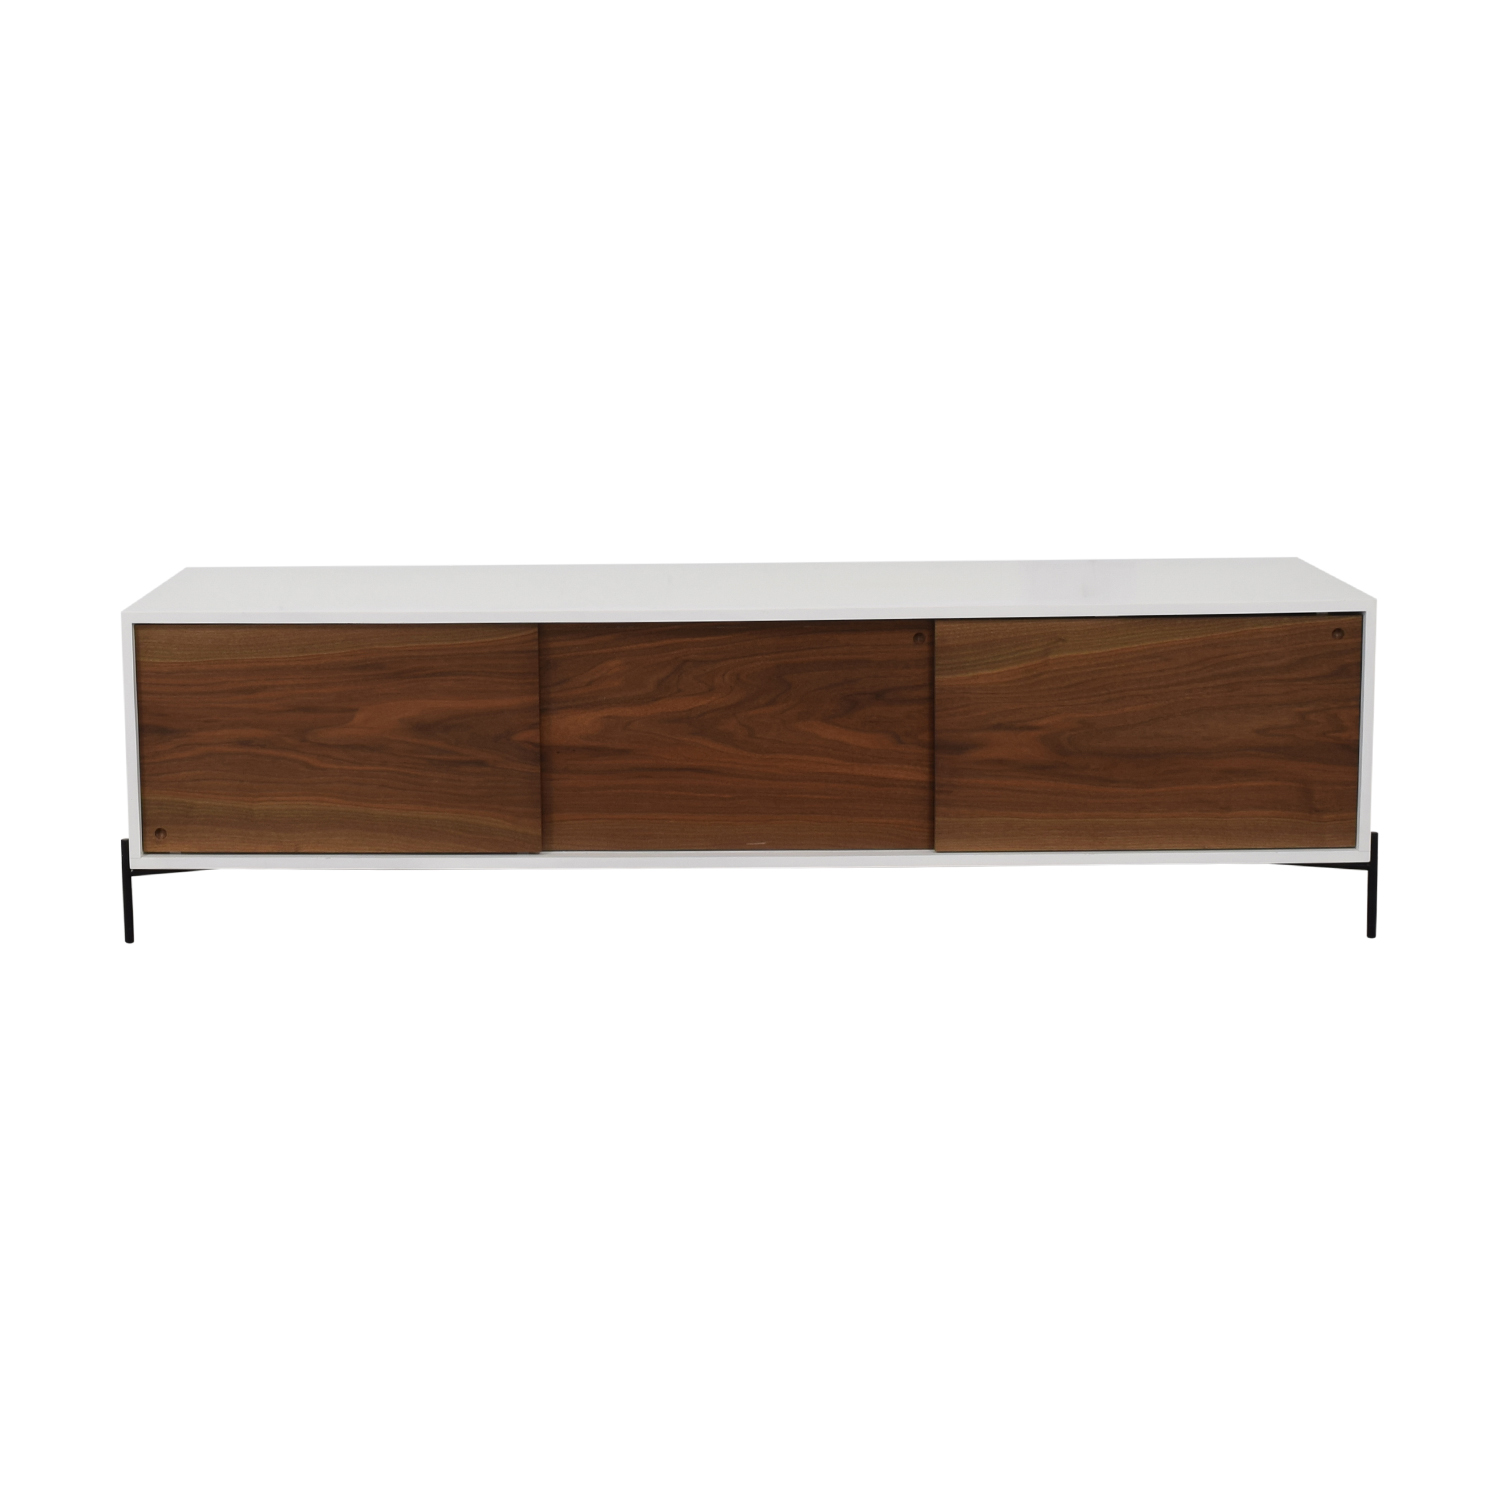 STORnewyork White with Walnut Doors Roosevelt Credenza sale